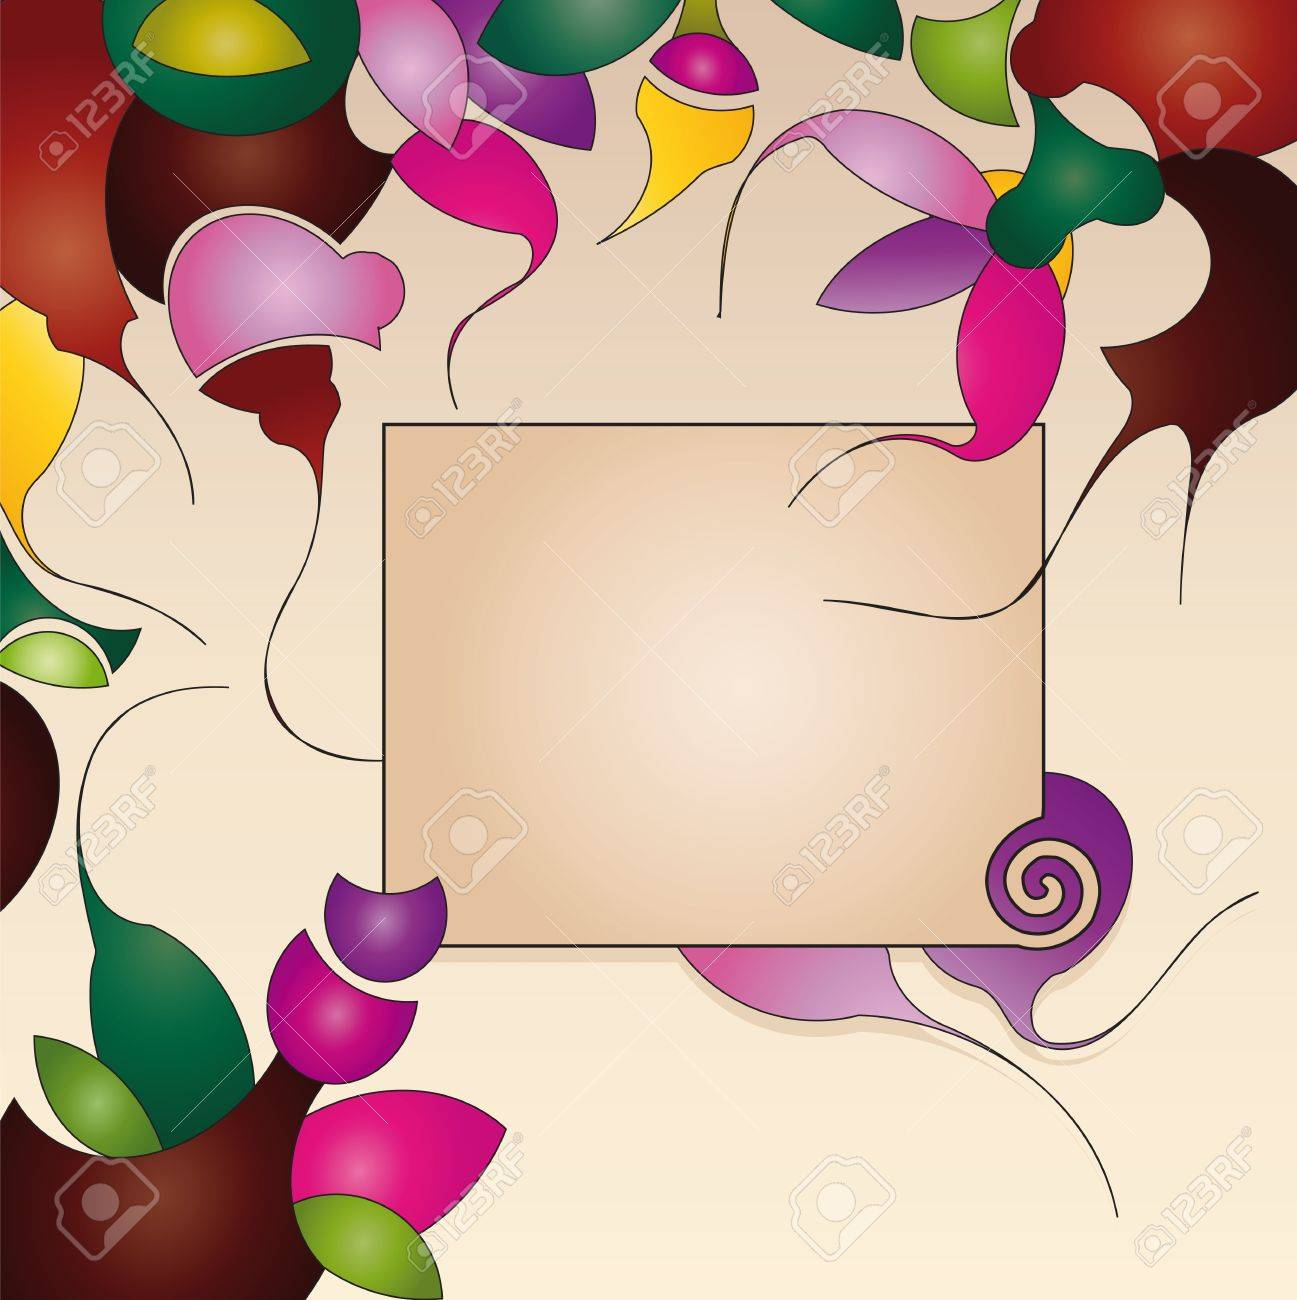 label on background with abstract flowers Stock Vector - 13165892